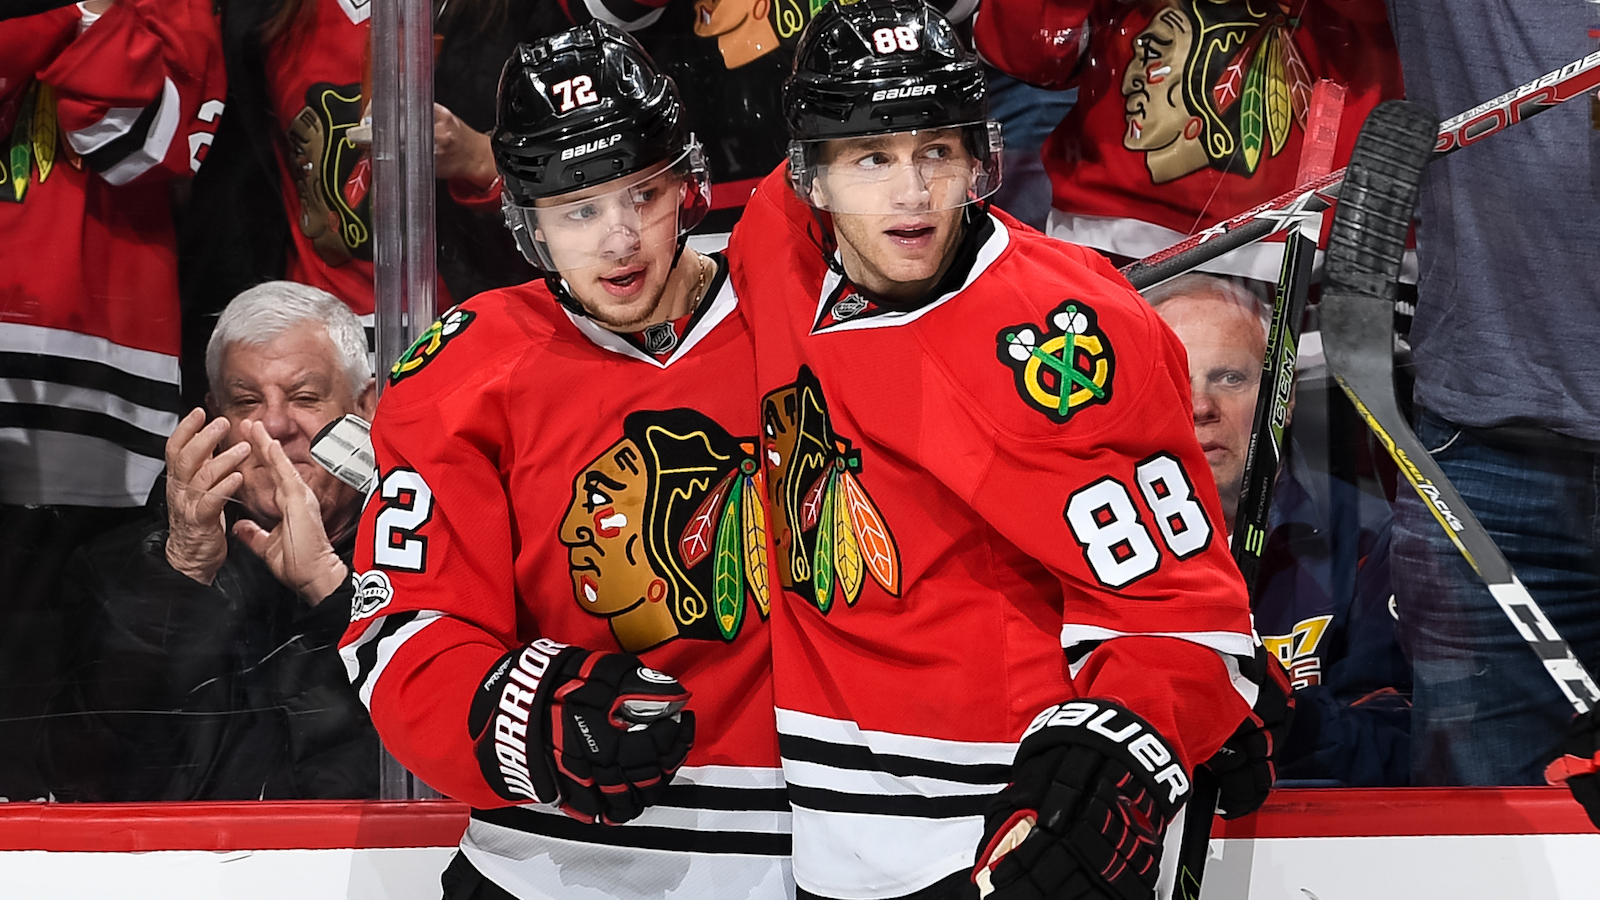 CHICAGO, IL - MARCH 31:  Artemi Panarin #72 and Patrick Kane #88 of the Chicago Blackhawks celebrate after Panarin scored an empty-net goal against the Columbus Blue Jackets in the third period at the United Center on March 31, 2017 in Chicago, Illinois.  (Photo by Bill Smith/NHLI via Getty Images)